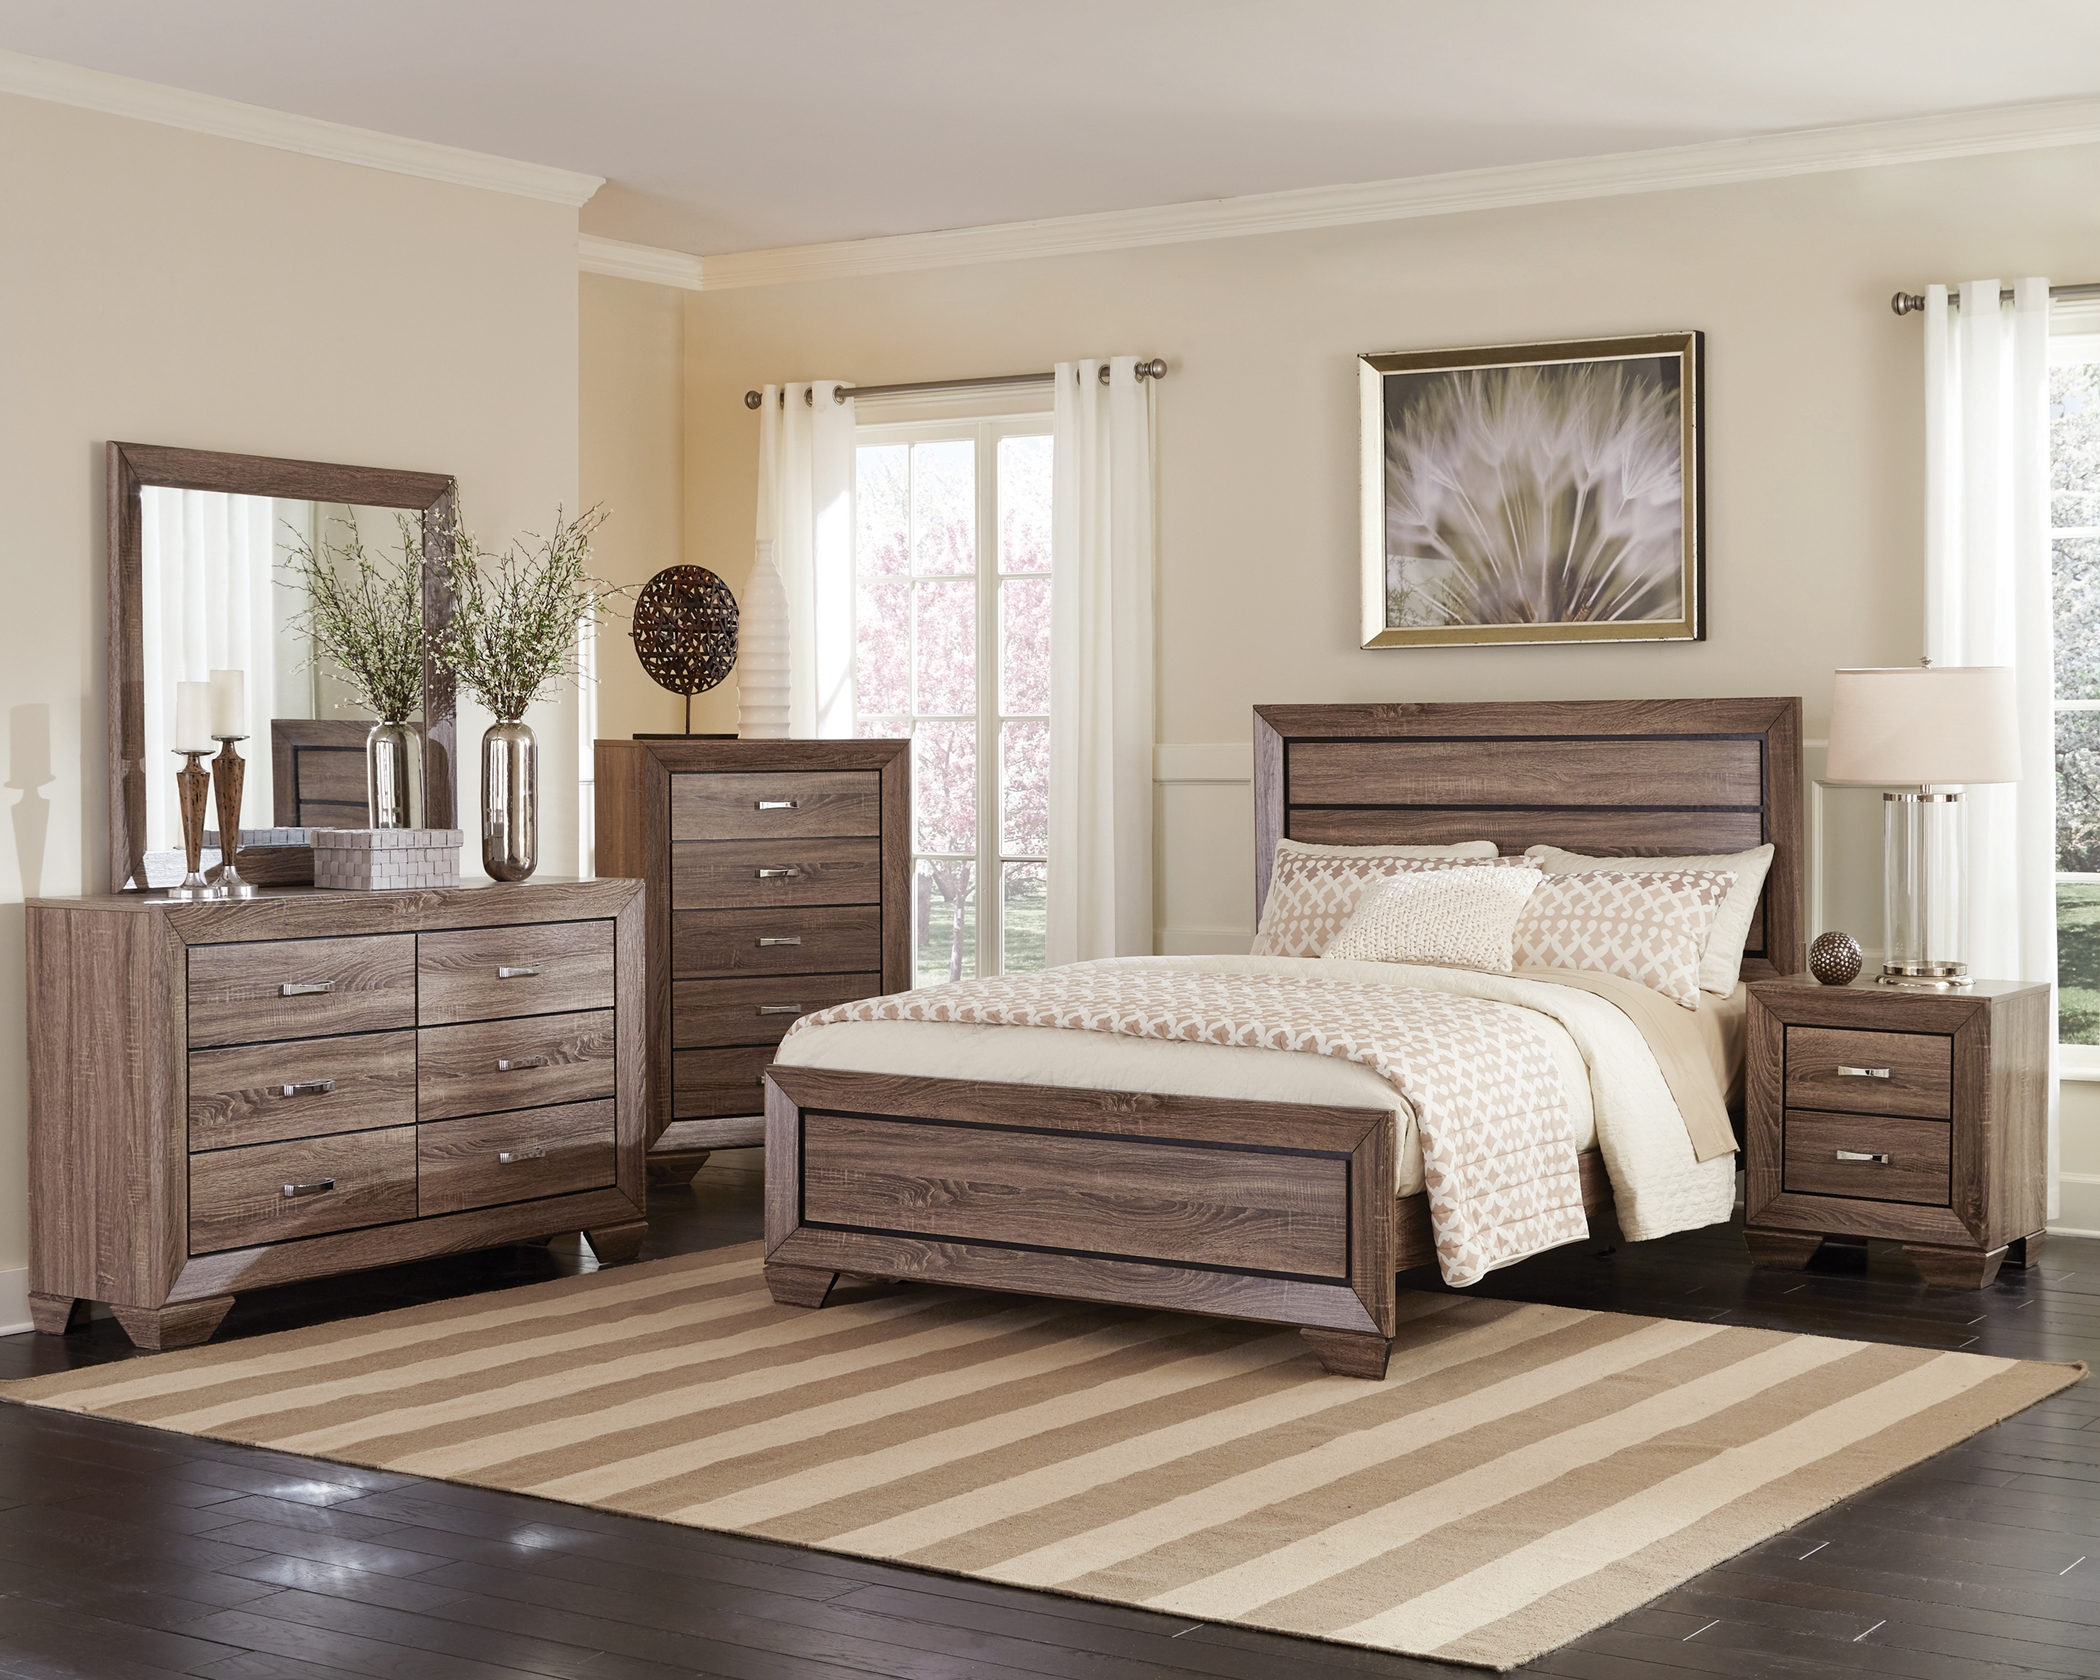 Kauffman Transitional Washed Taupe E. King 5-Pc.